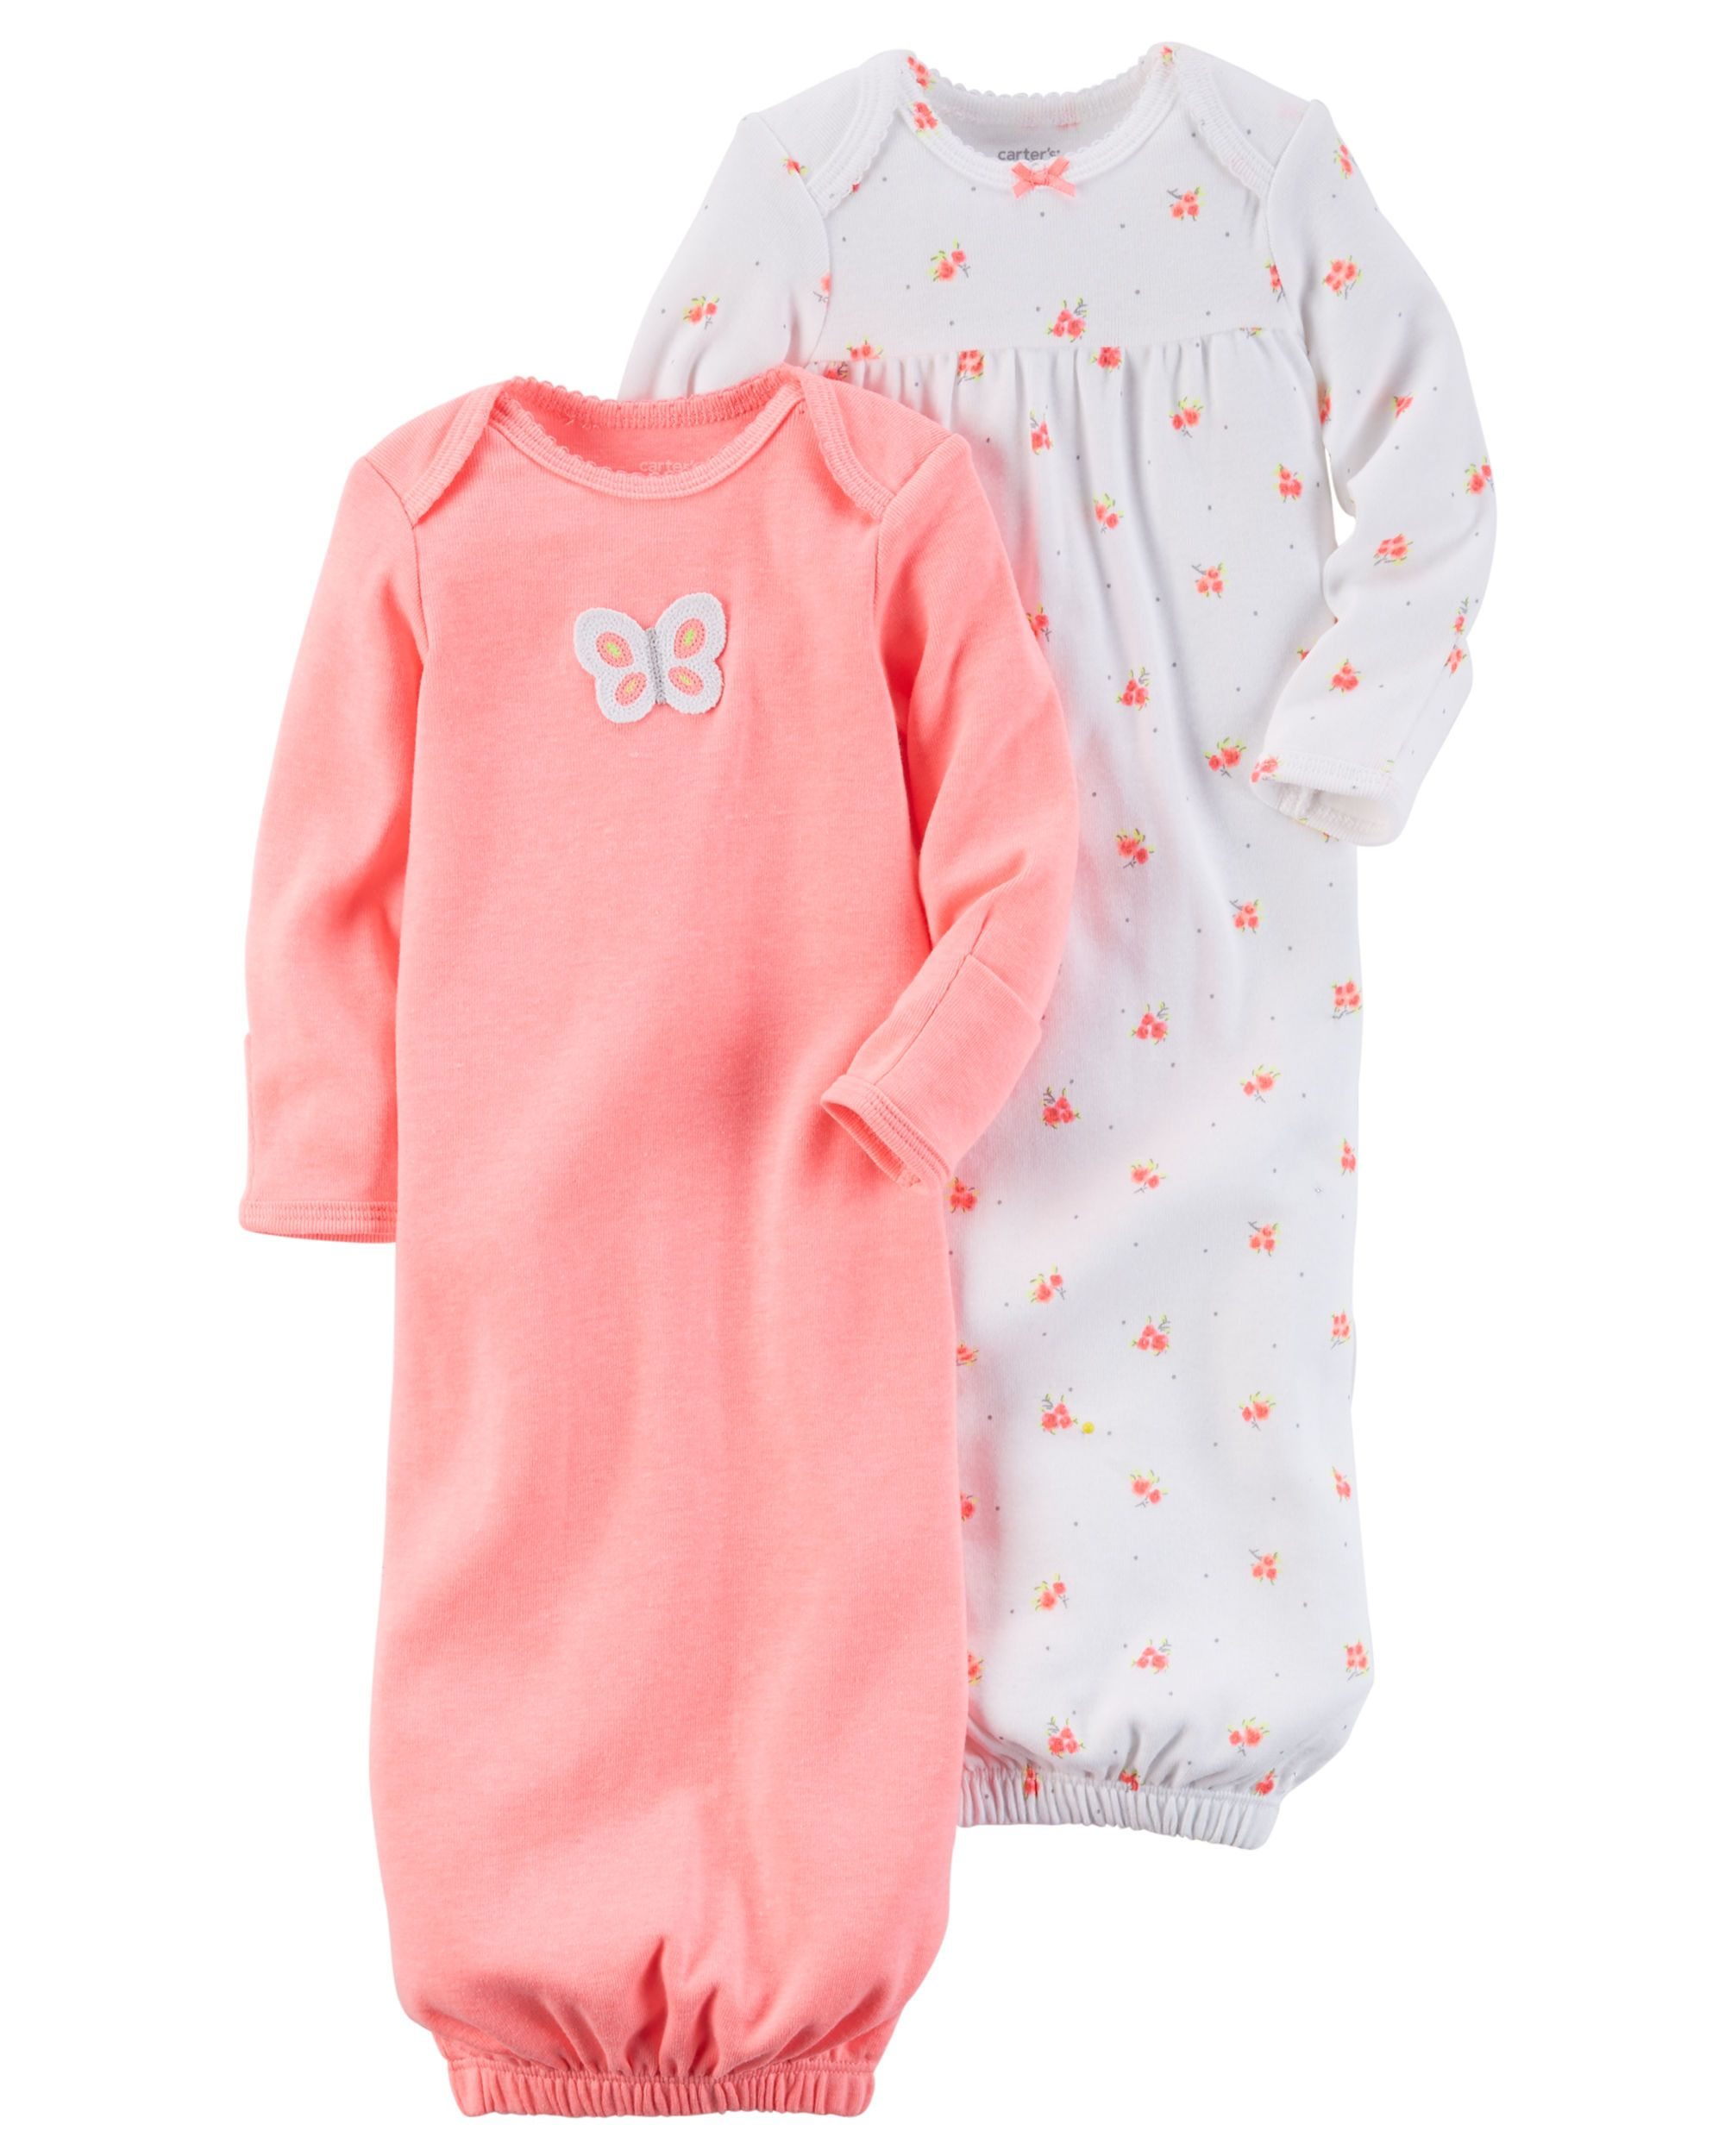 2-Pack Babysoft Neon Sleeper Gowns | Babies clothes, Babies and ...